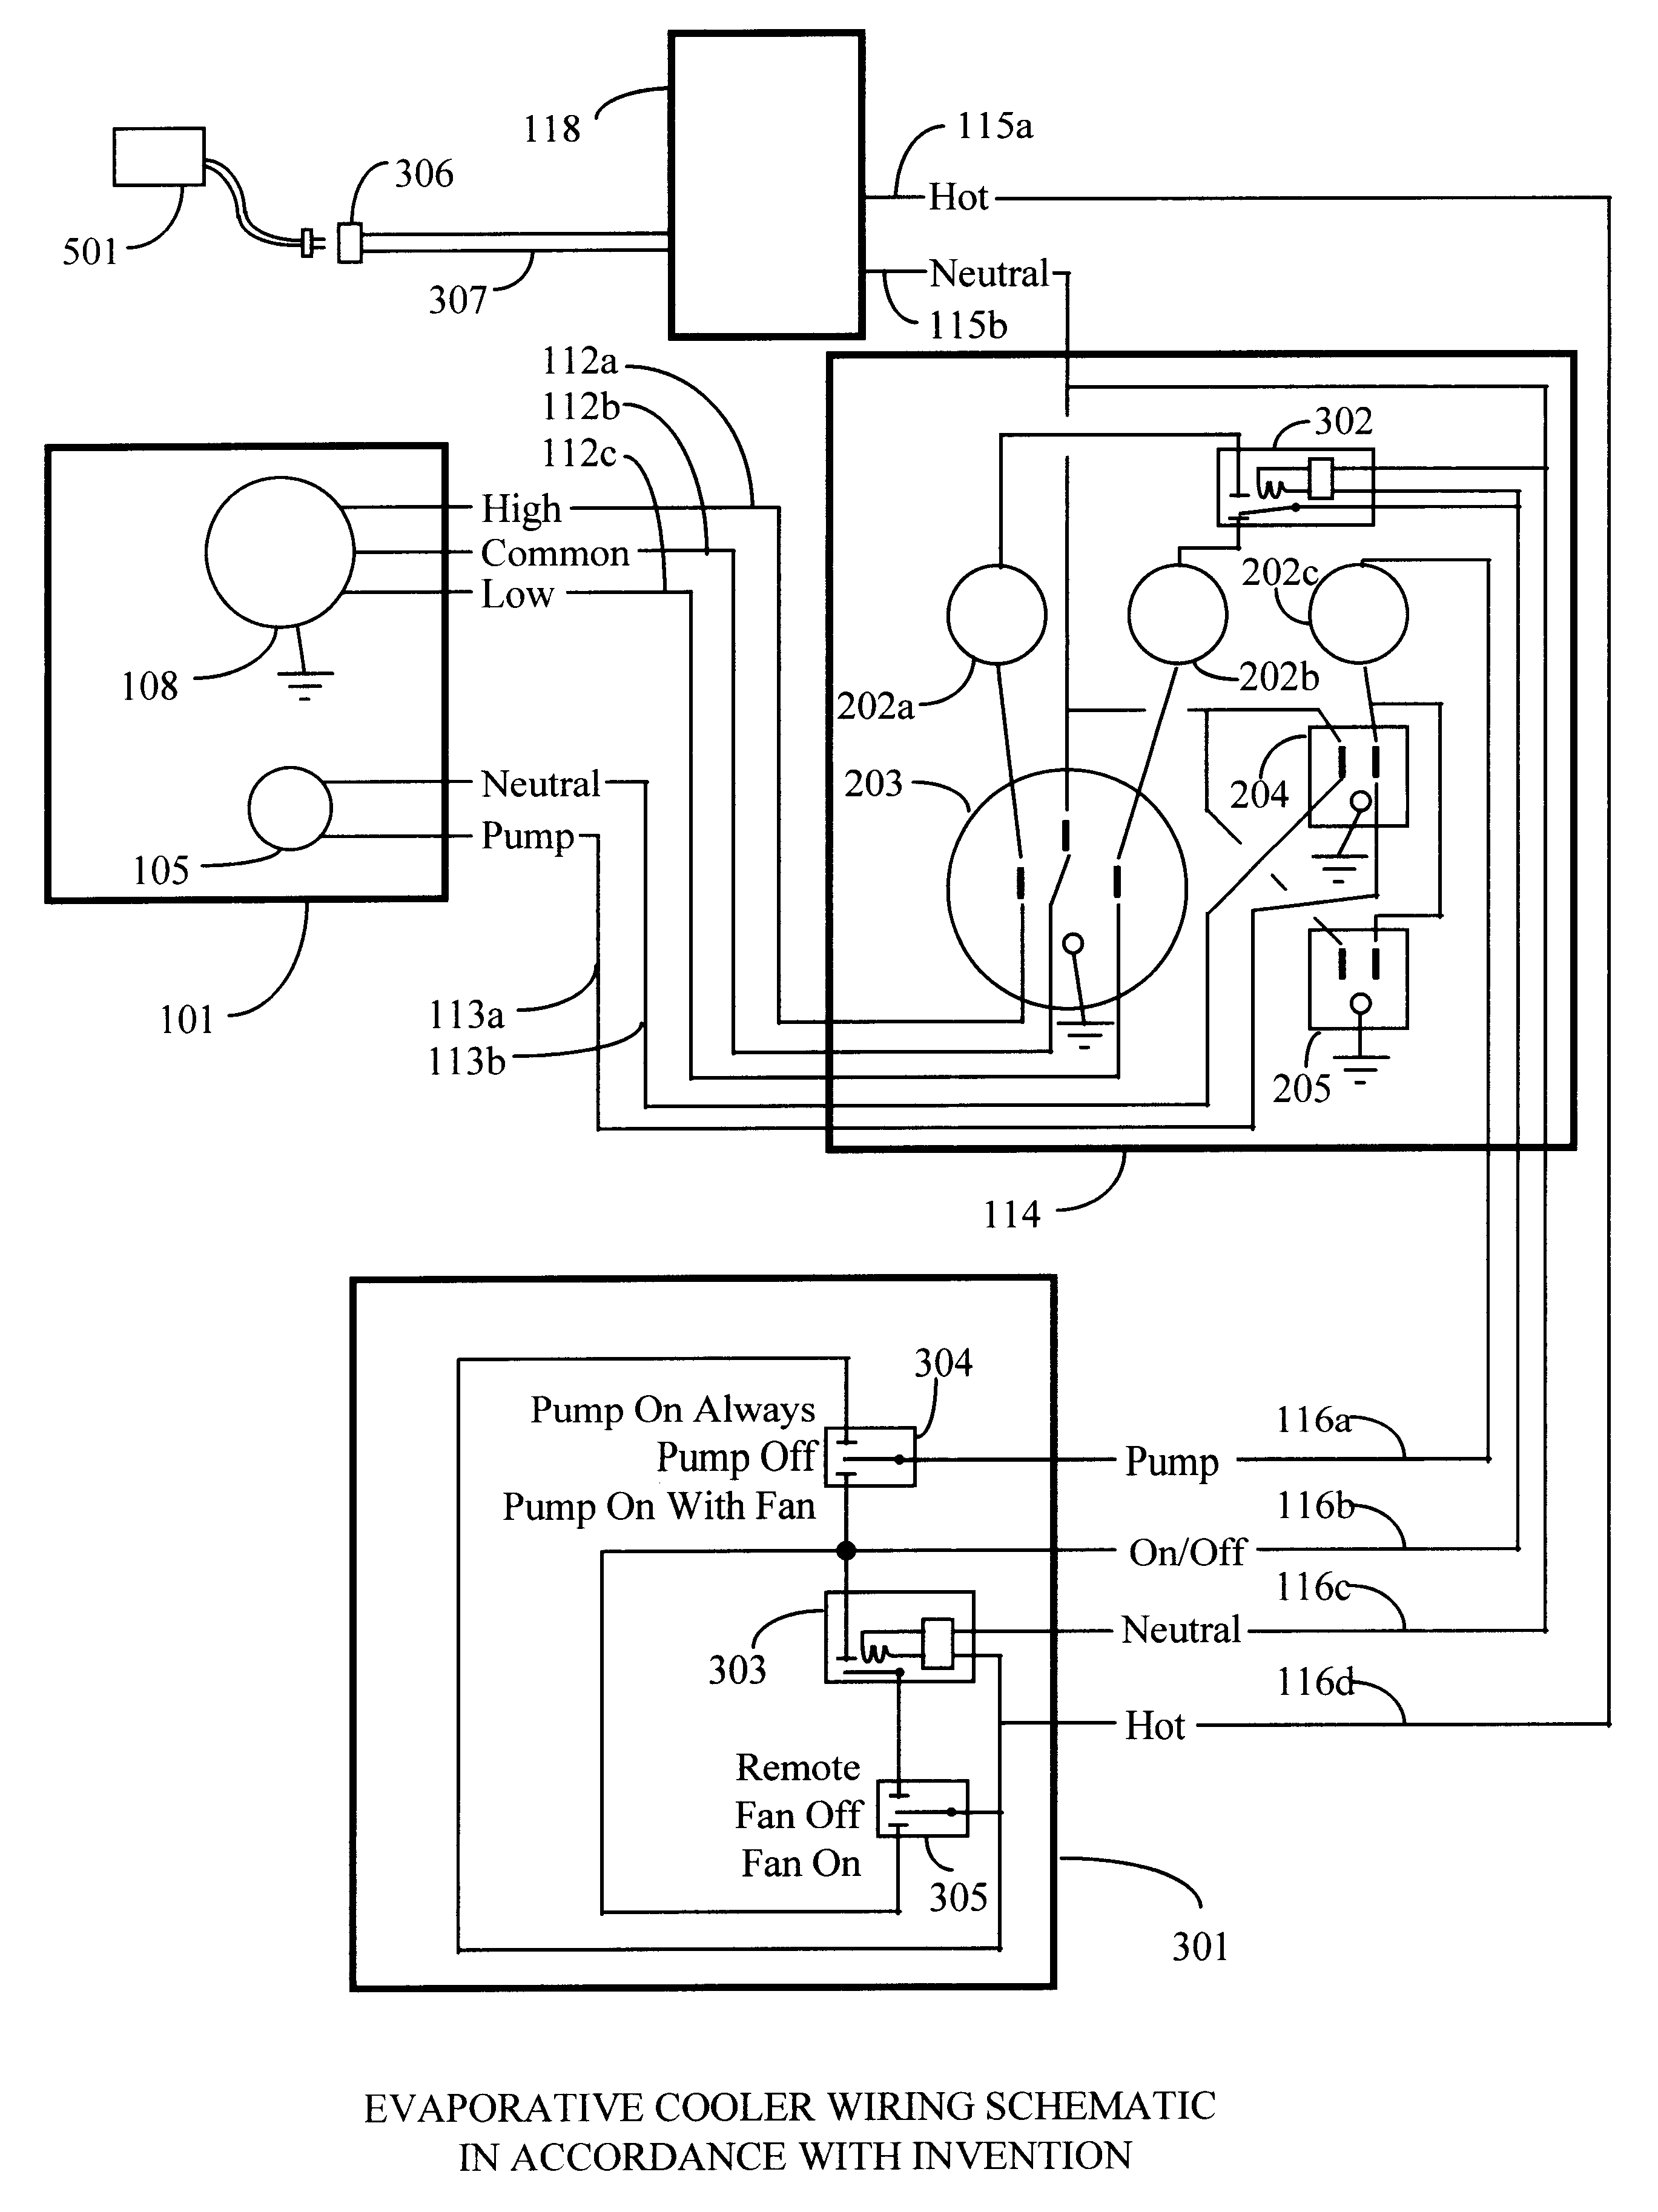 cooler motor wiring diagram patent us6357243 - remote control system for evaporative ...